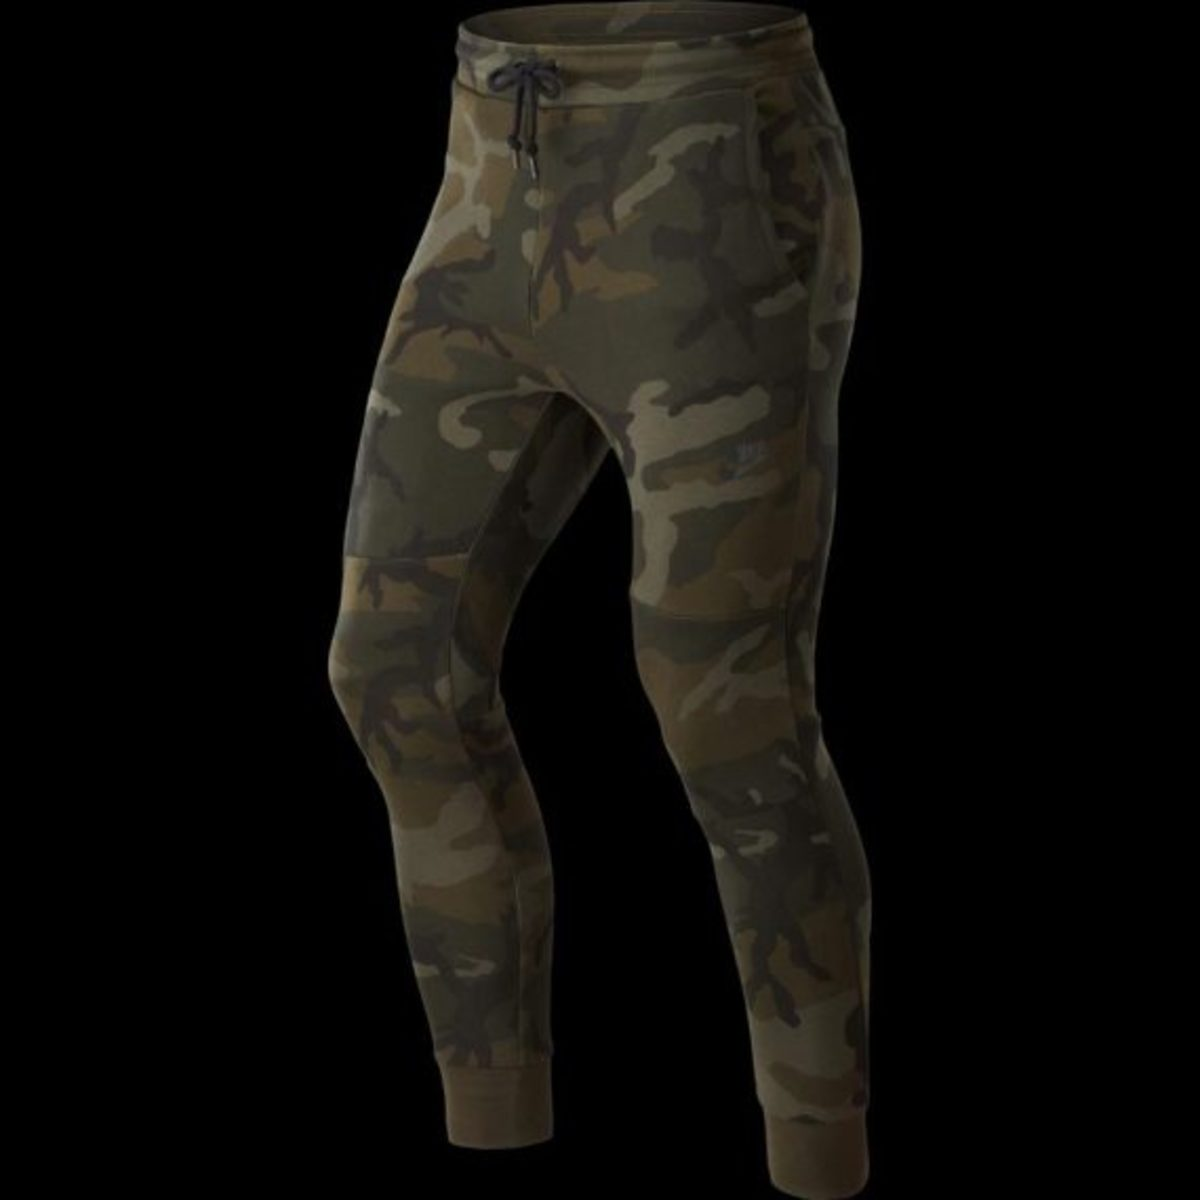 nike-tech-fleece-pants-camo-01